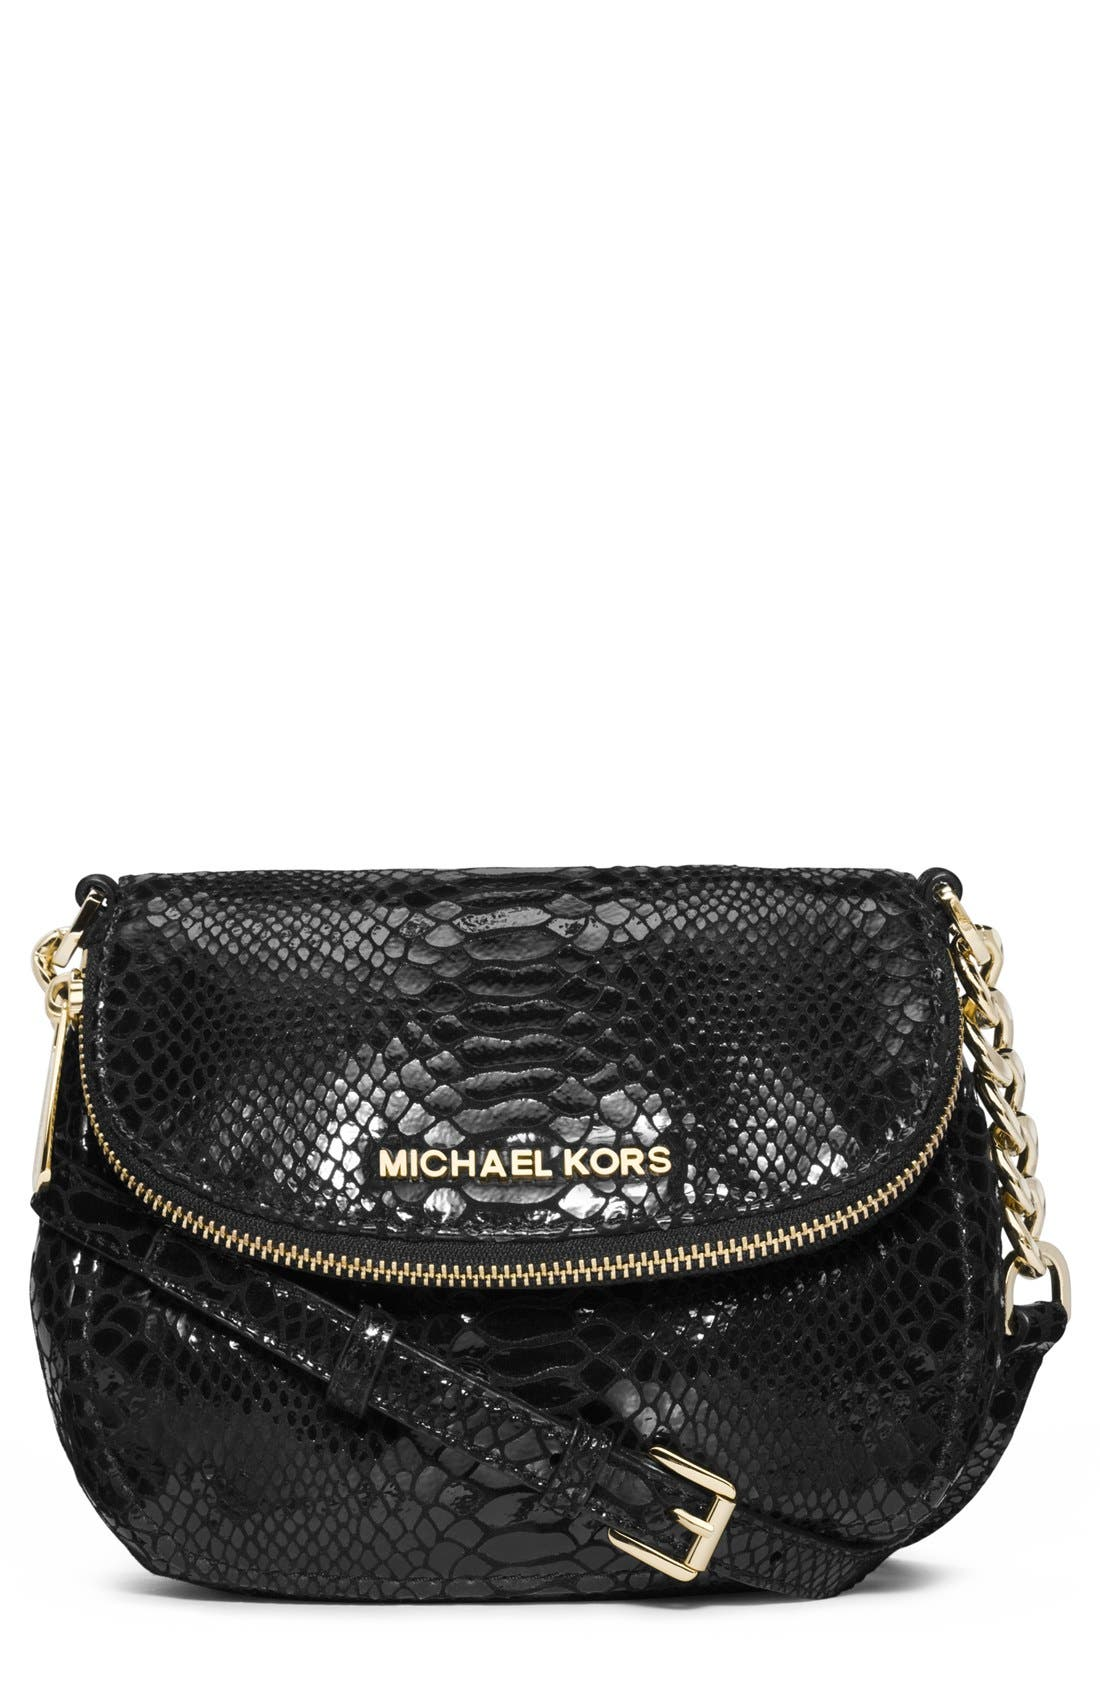 Main Image - MICHAEL Michael Kors 'Bedford' Python Embossed Leather Crossbody Bag